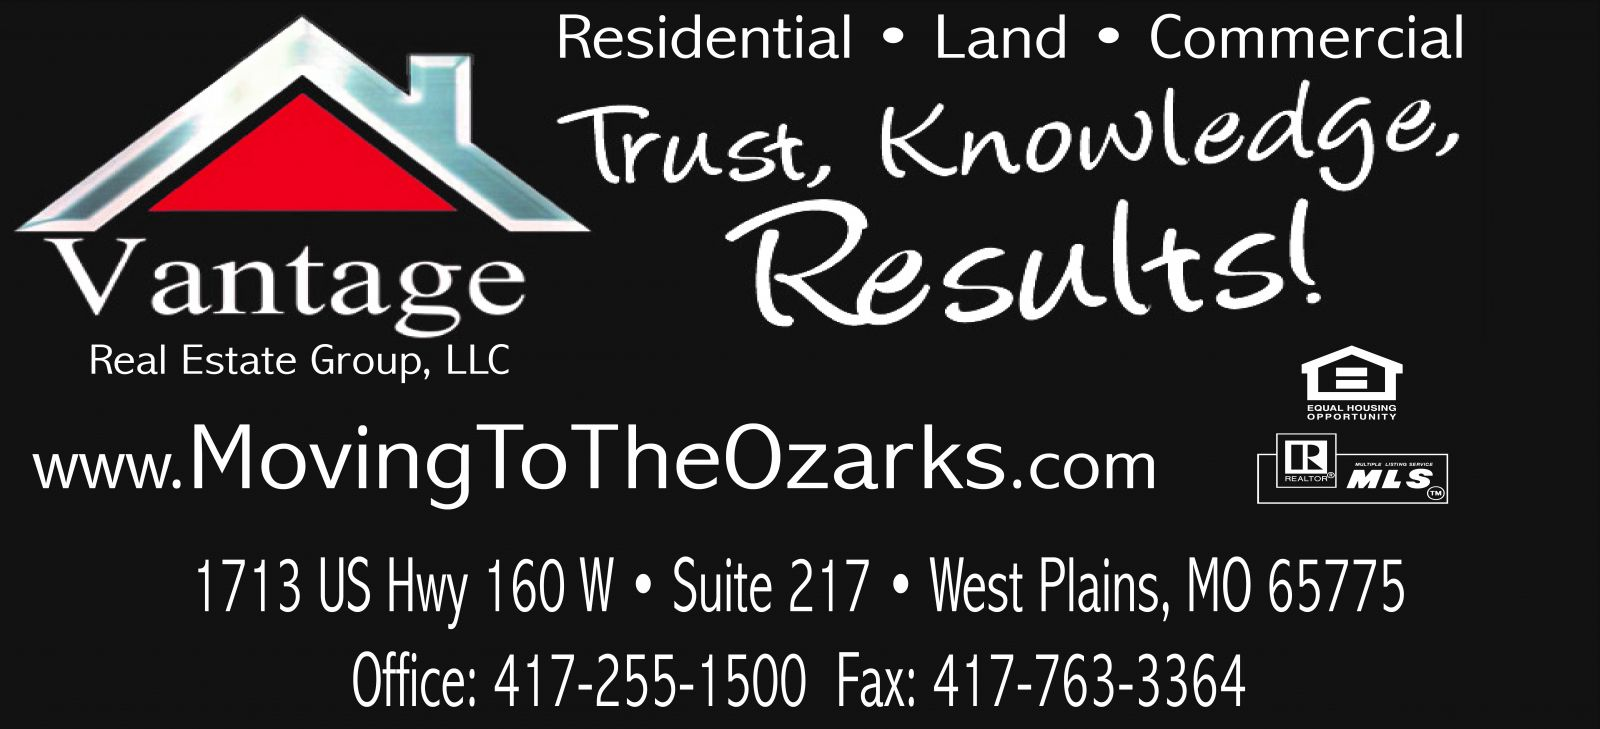 Vantage Real Estate Group, LLC. � Tina Jones, Co-owner/Broker & Hedi Rader, Co-owner/Realtor � West Plains, MO Real Estate